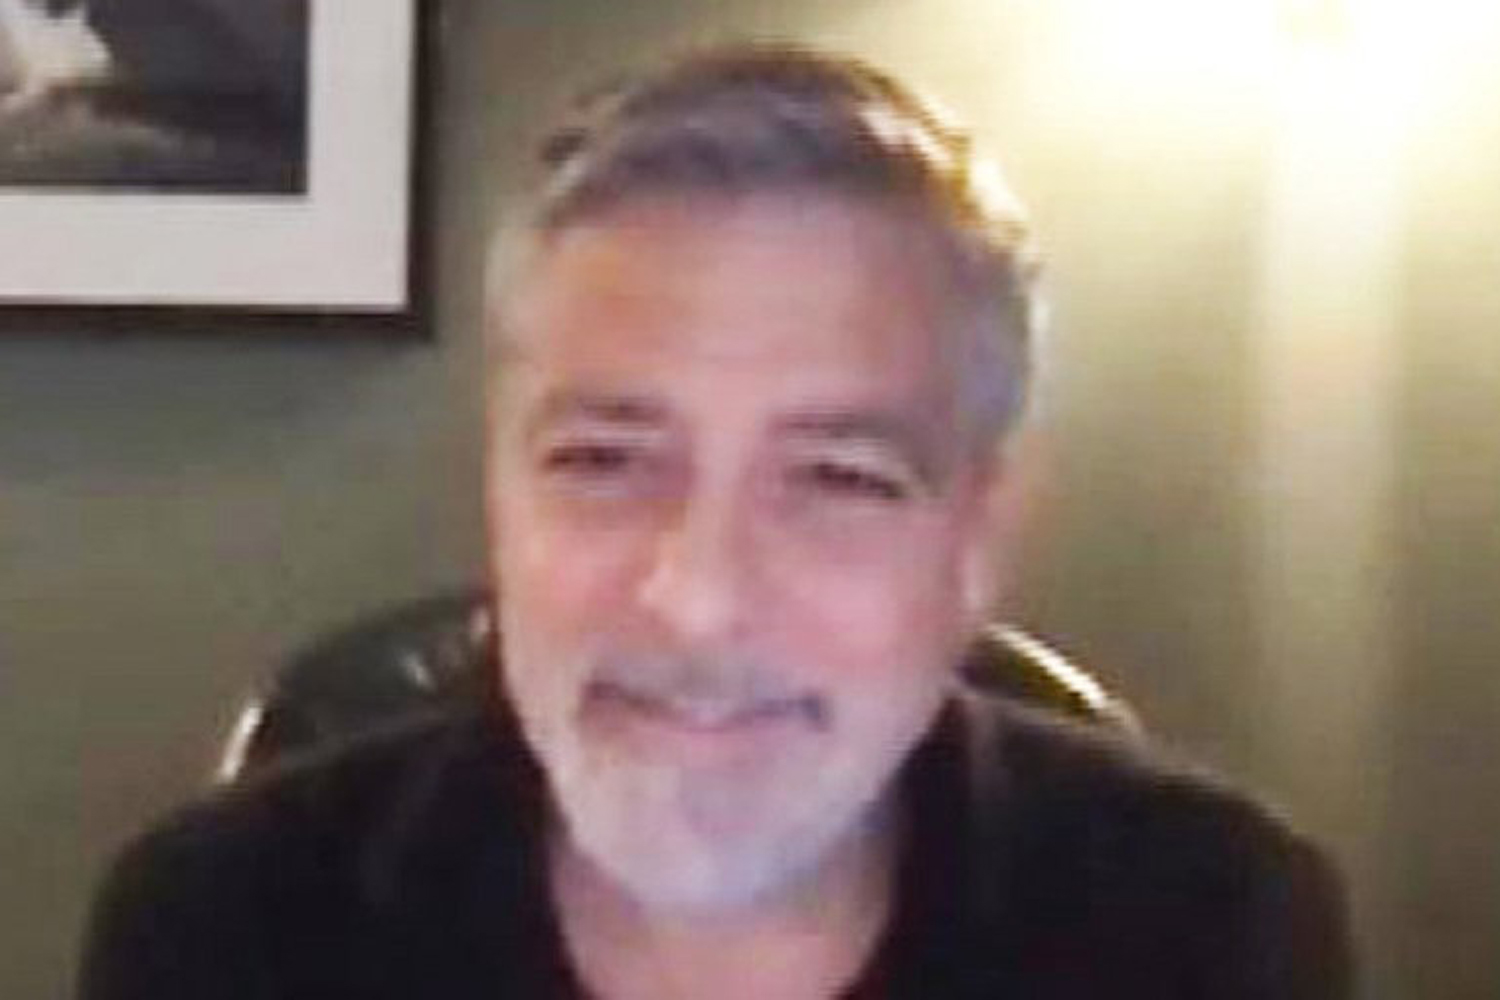 George Clooney Jokes That He's 'Not Thrilled' About Turning 60: 'Better Than Dead'